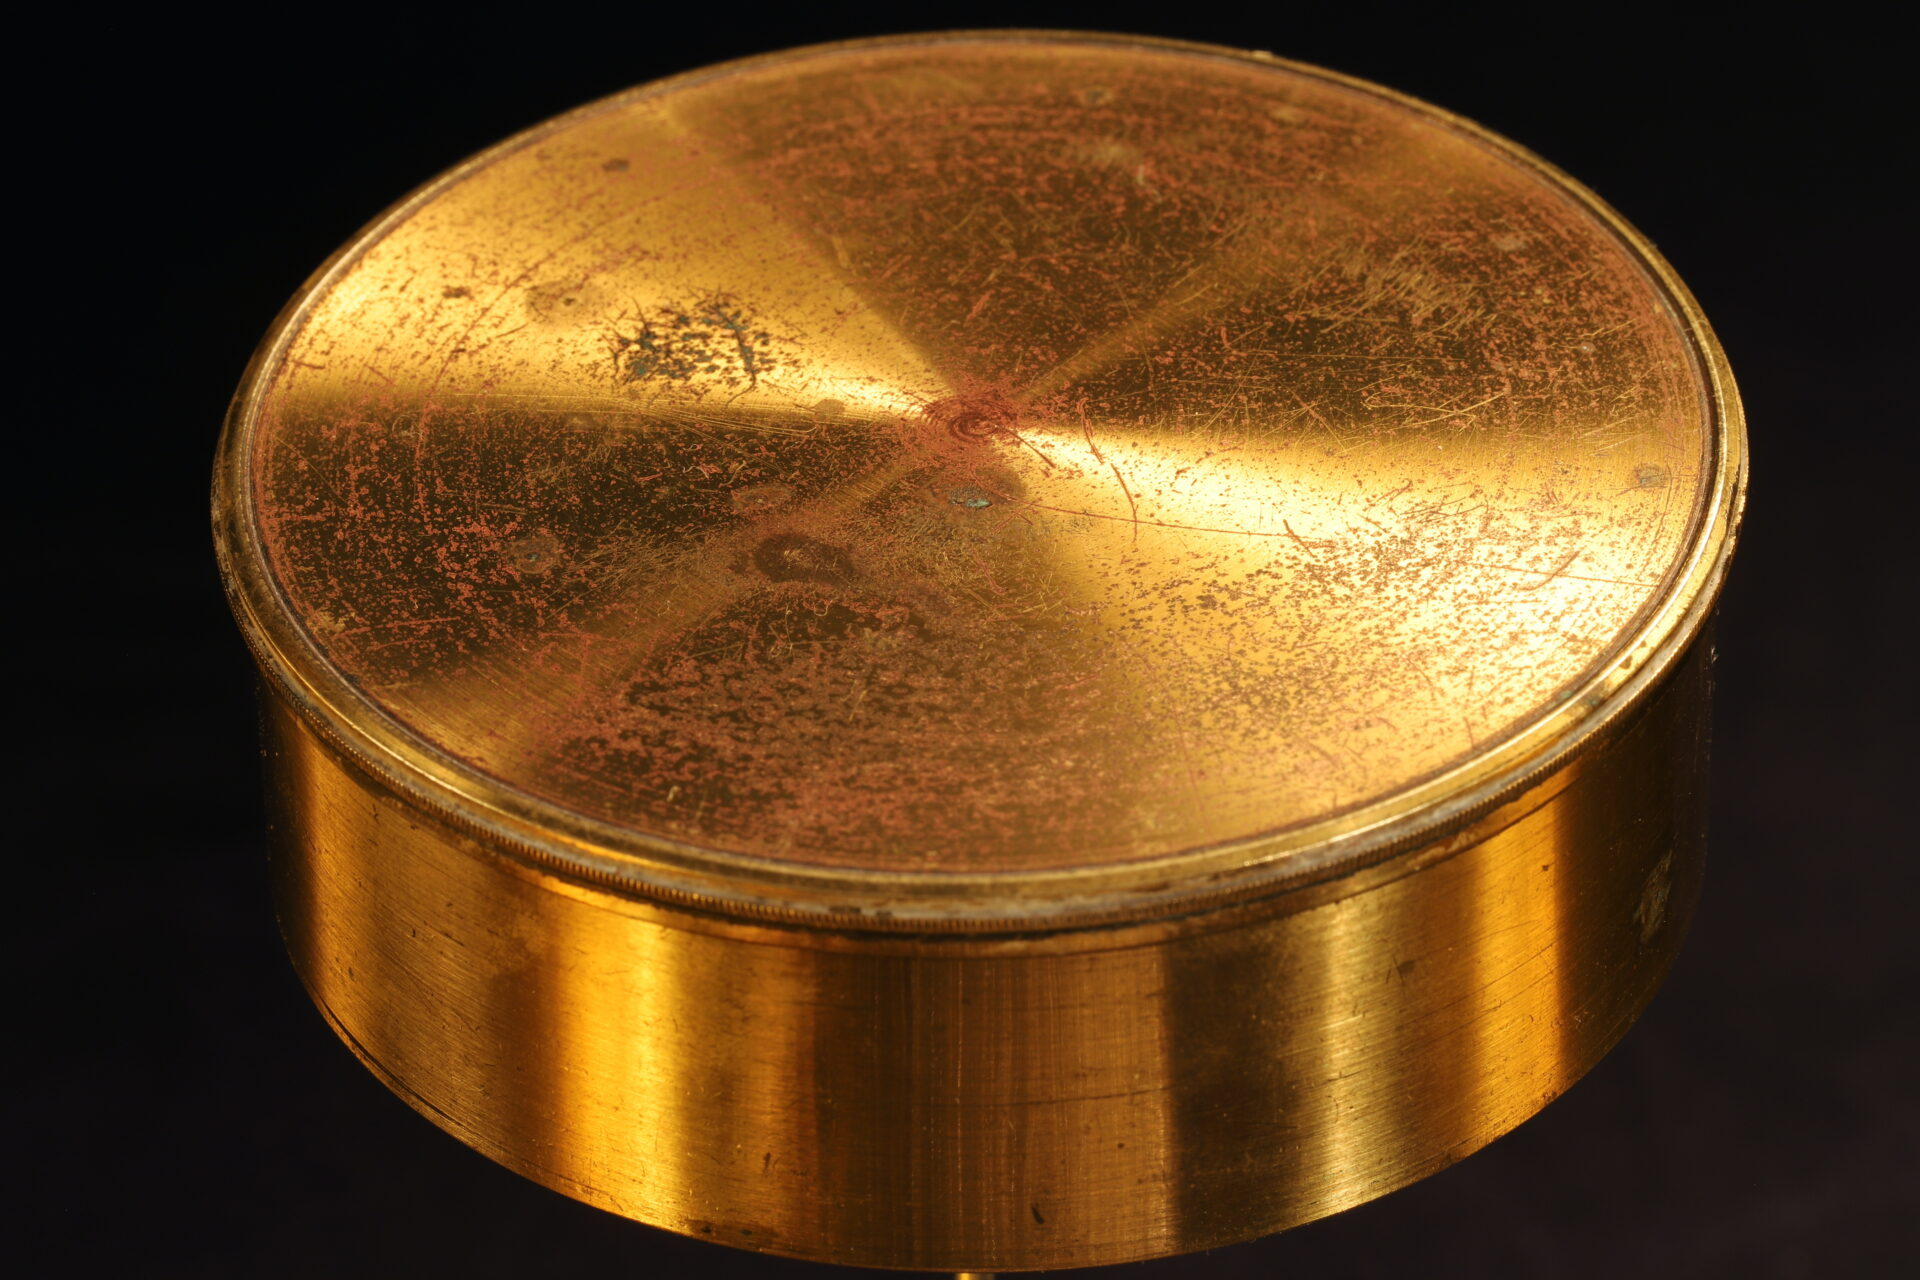 Image of Explorers Singers Patent Compass c1870 with lid in place